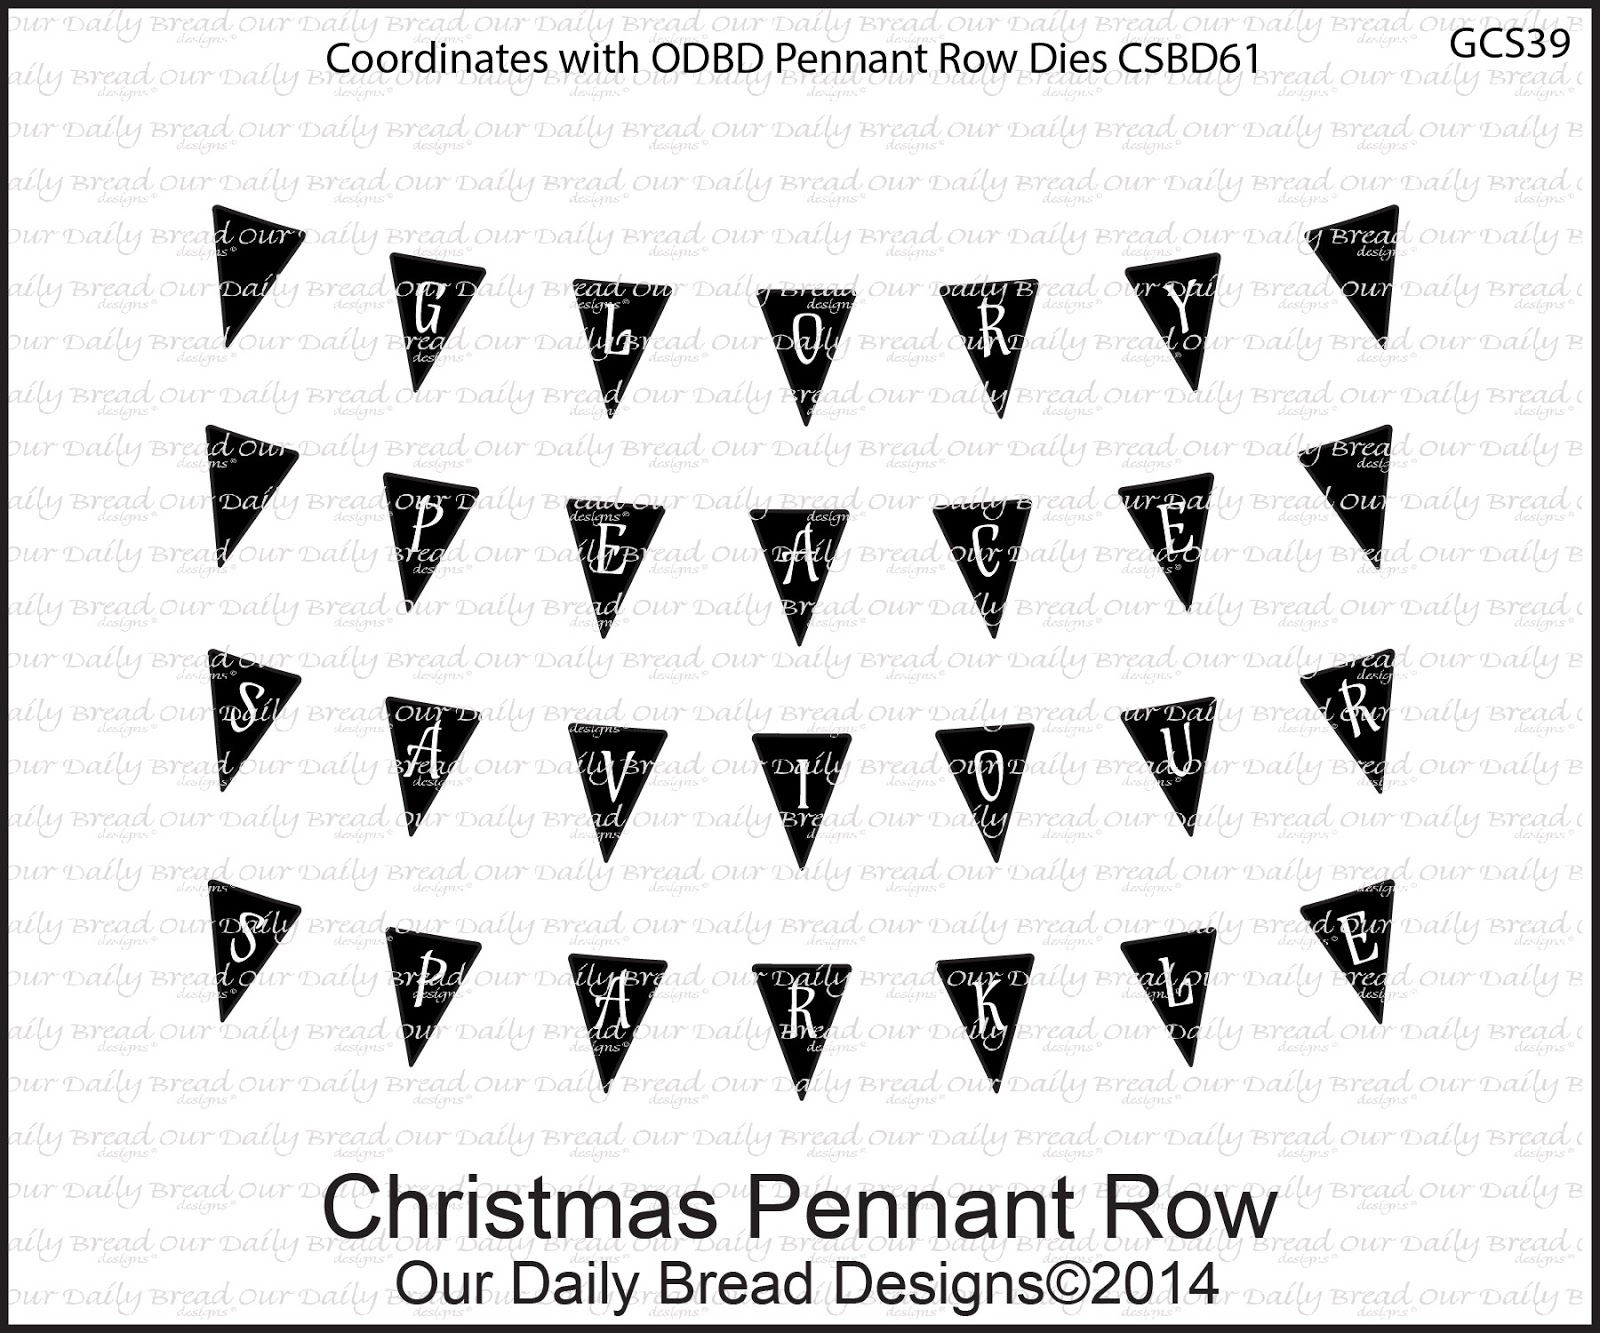 Stamps - Our Daily Bread Designs Christmas Pennant Row